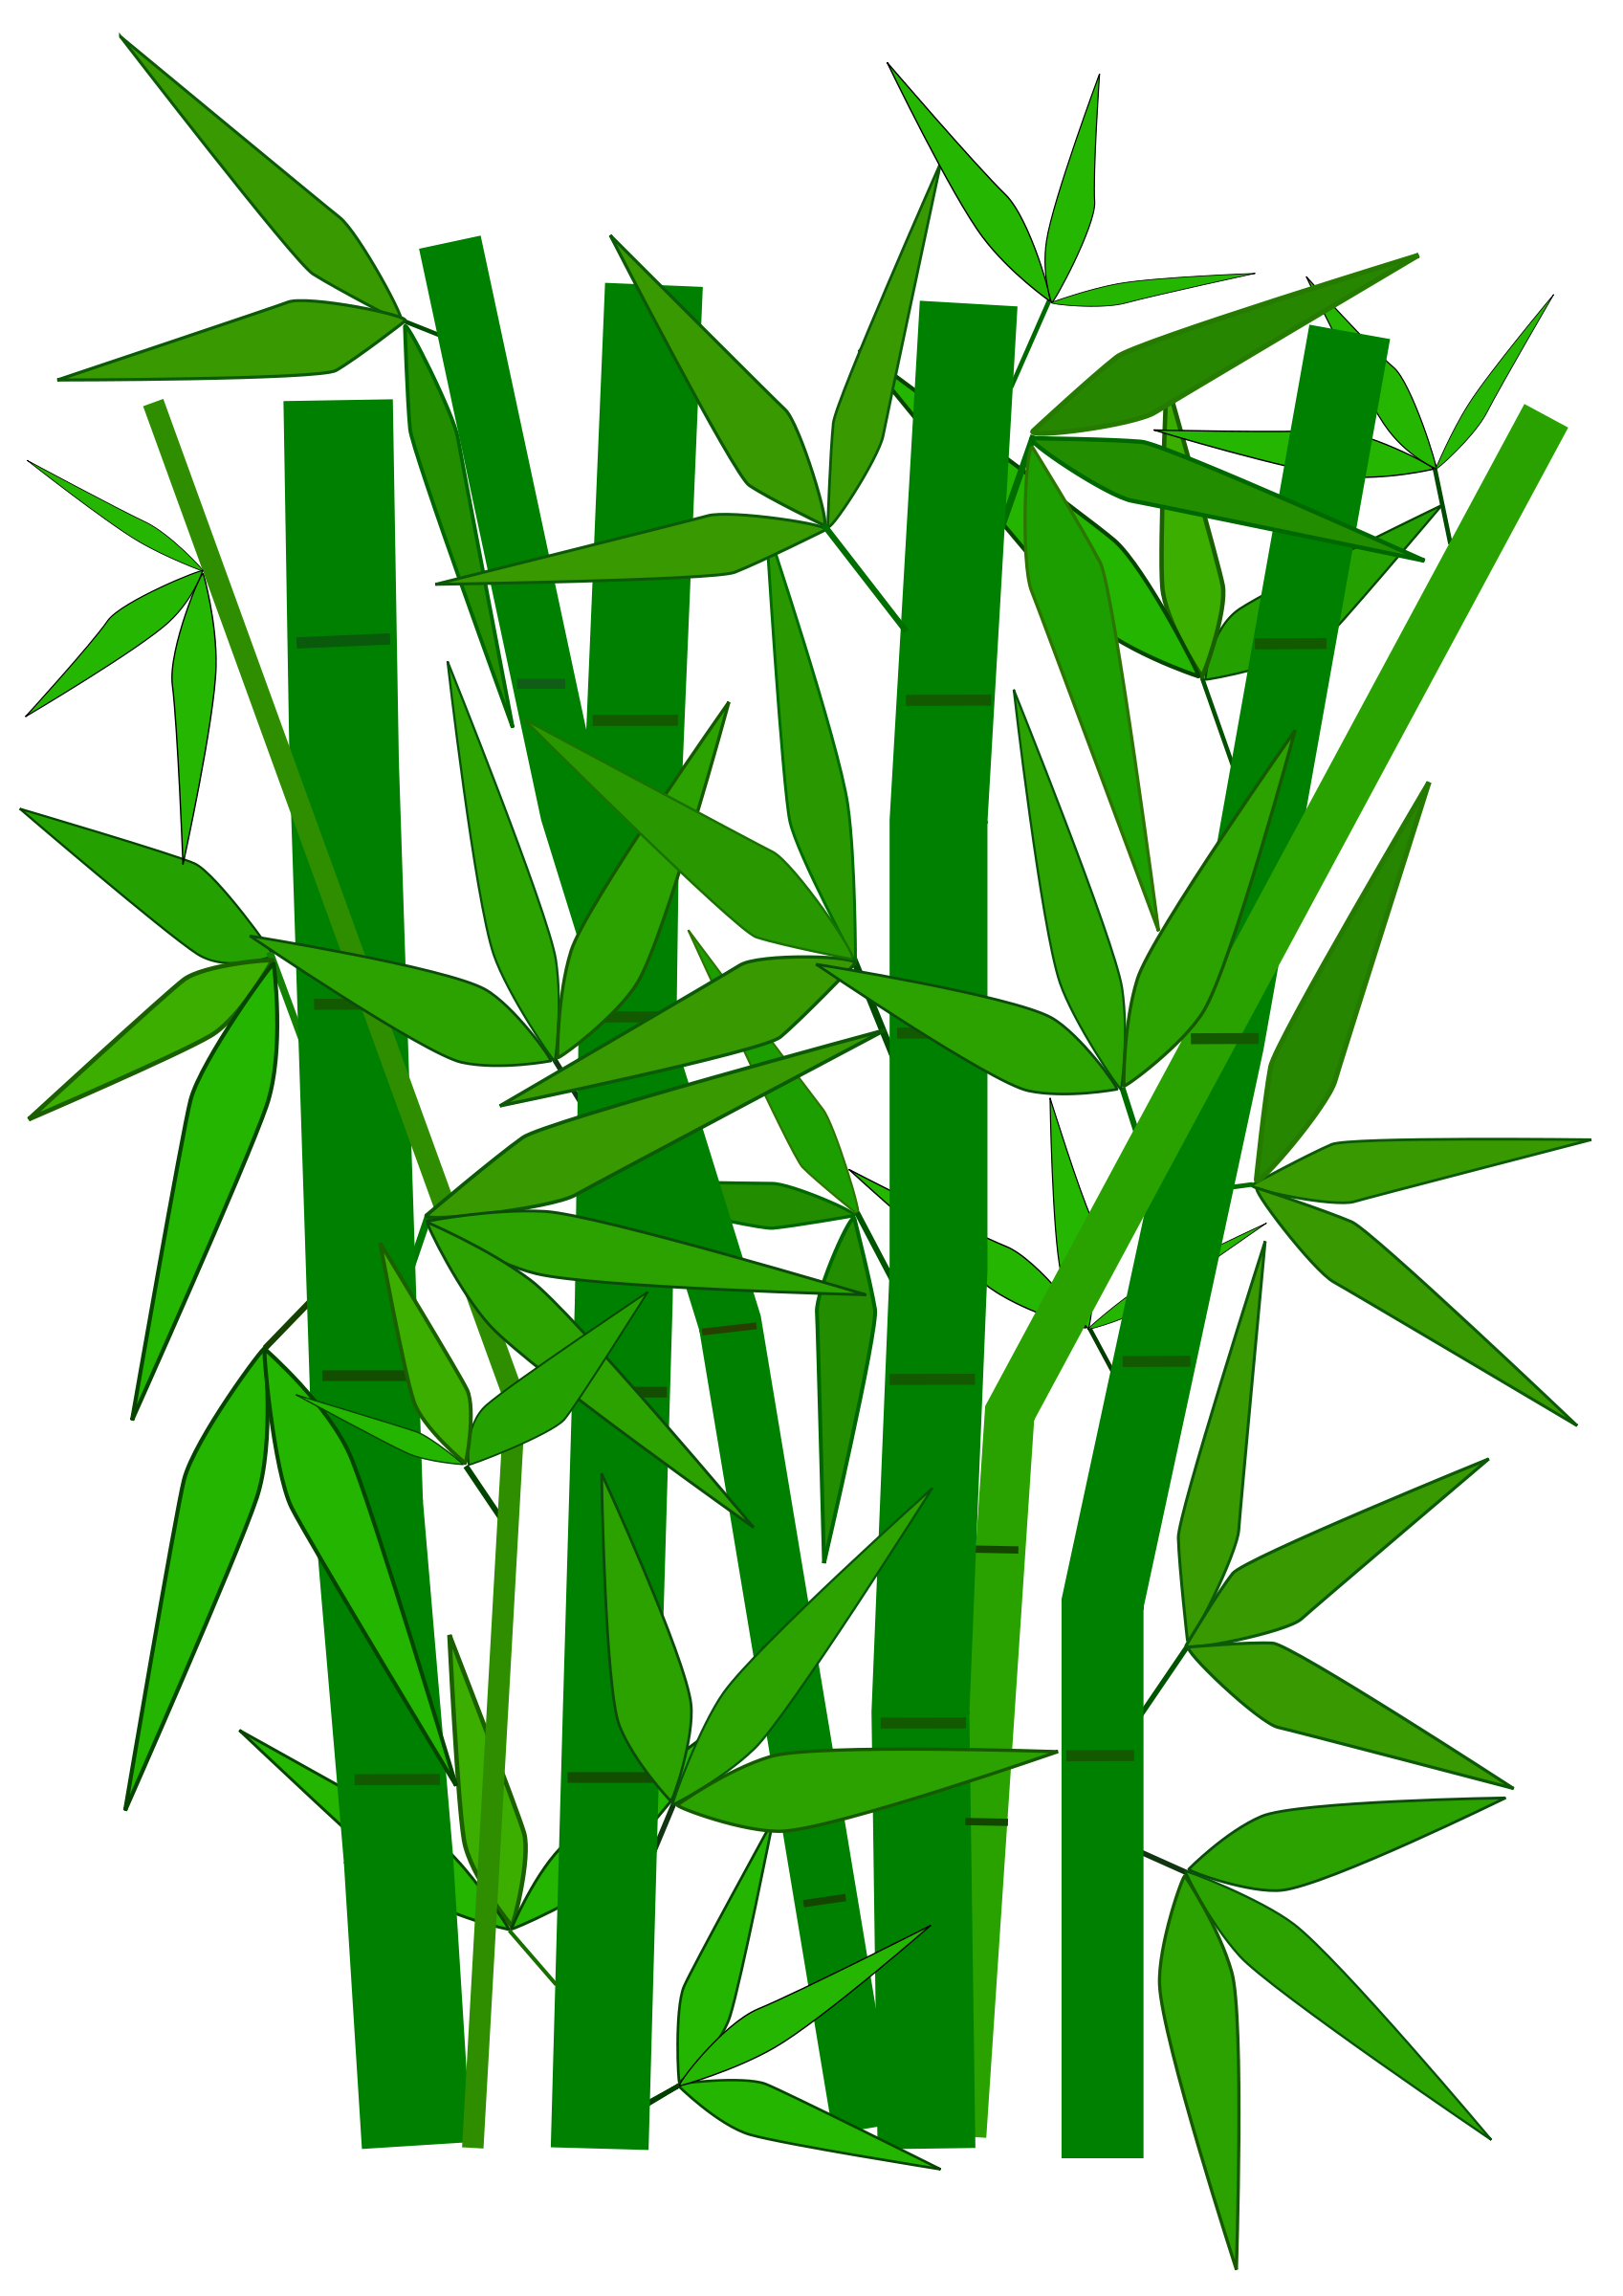 Bamboo Leaves Clip Art | Clipart Panda - Free Clipart Images